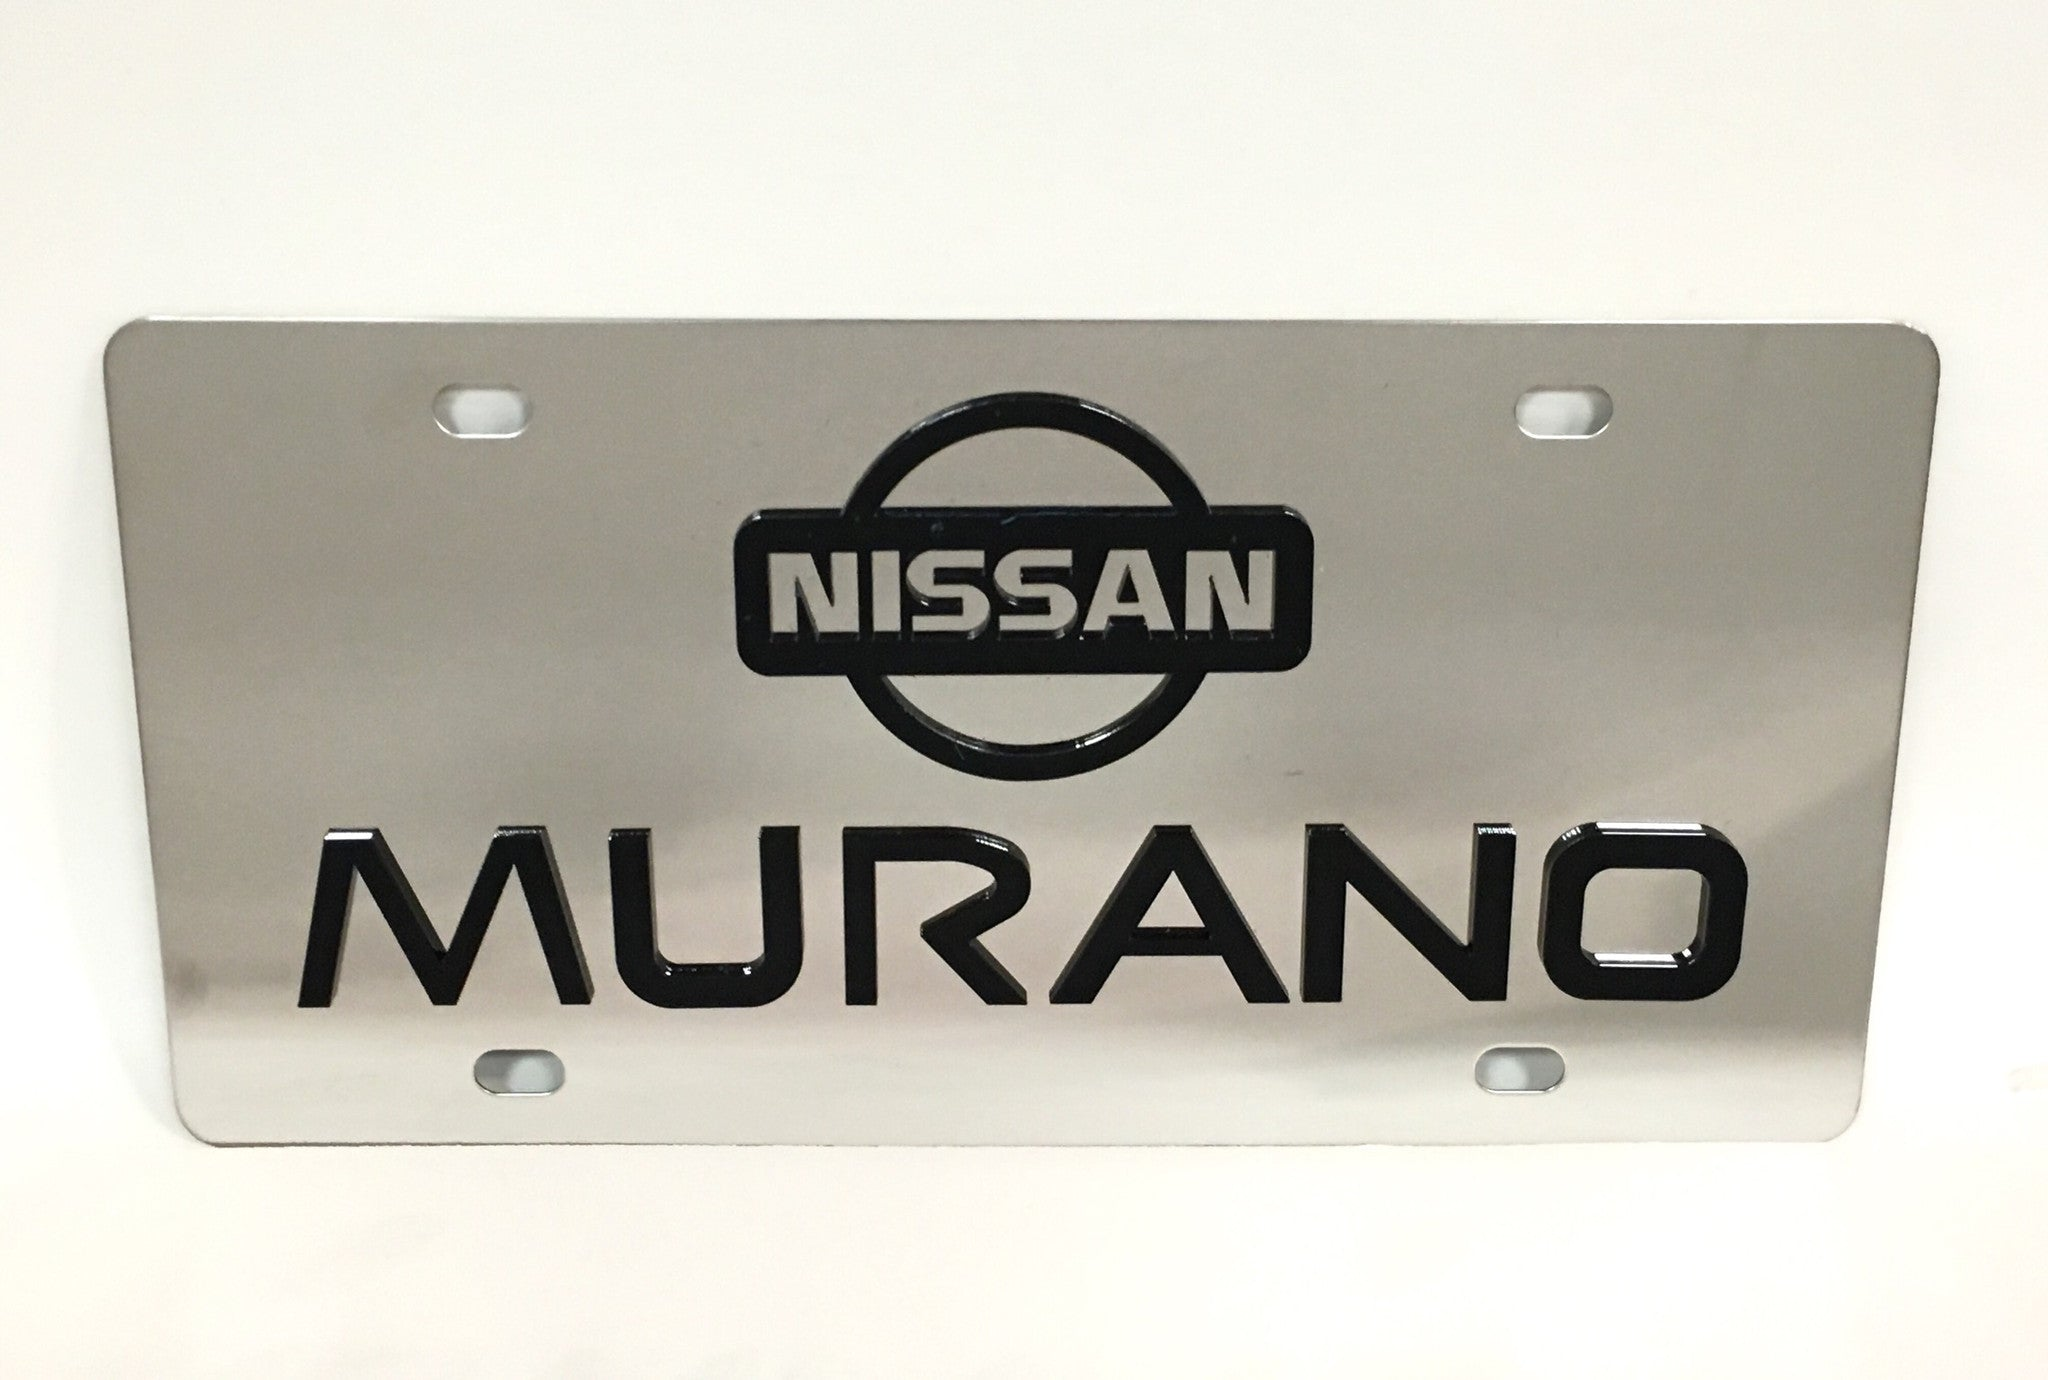 Nissan Murano Stainless Steel License Plate